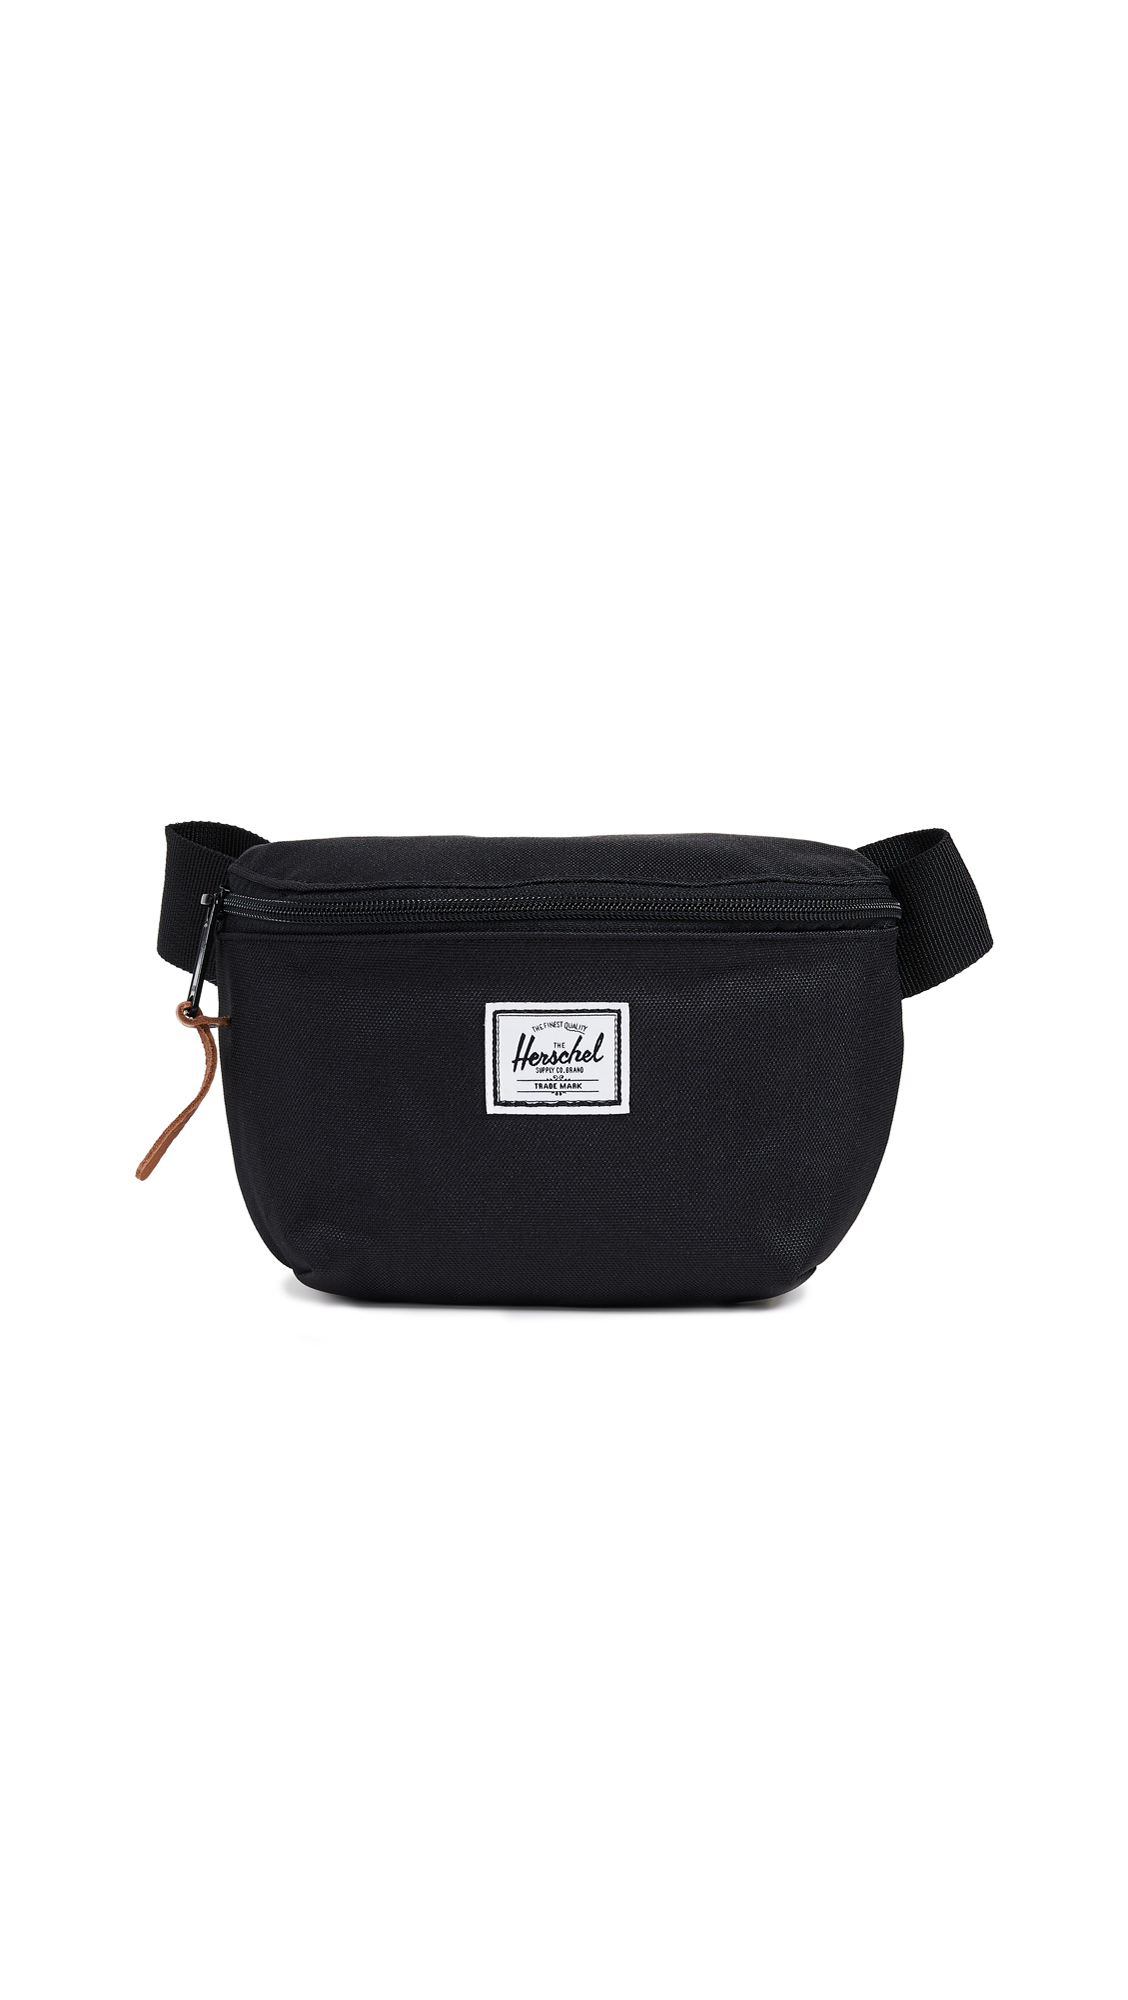 FOURTEEN FANNY PACK